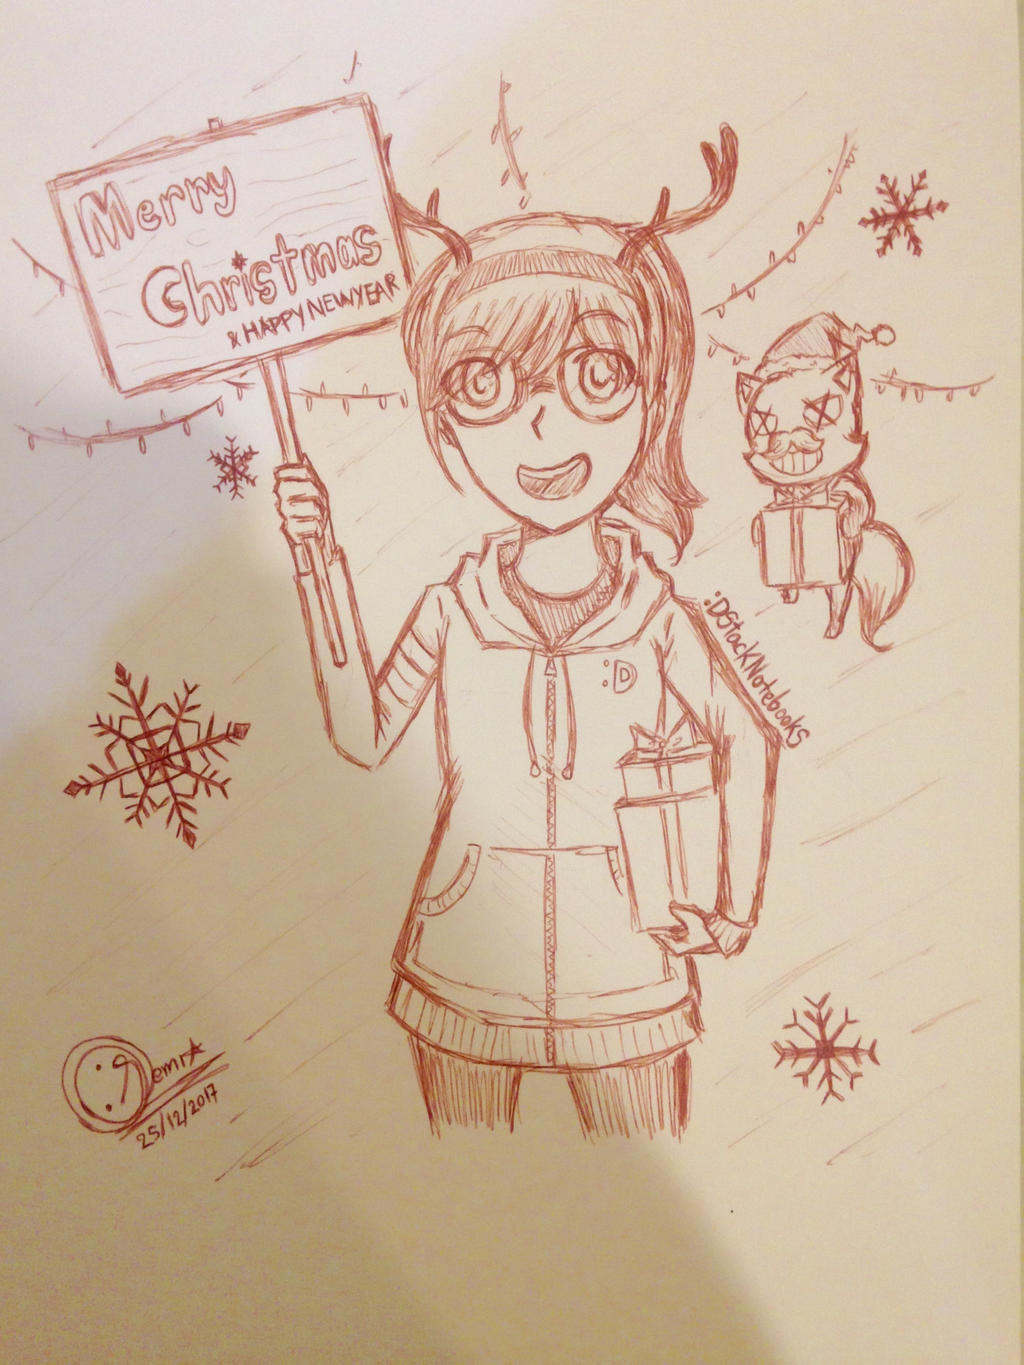 Merry_Christmas2017 by DStackNotebookS